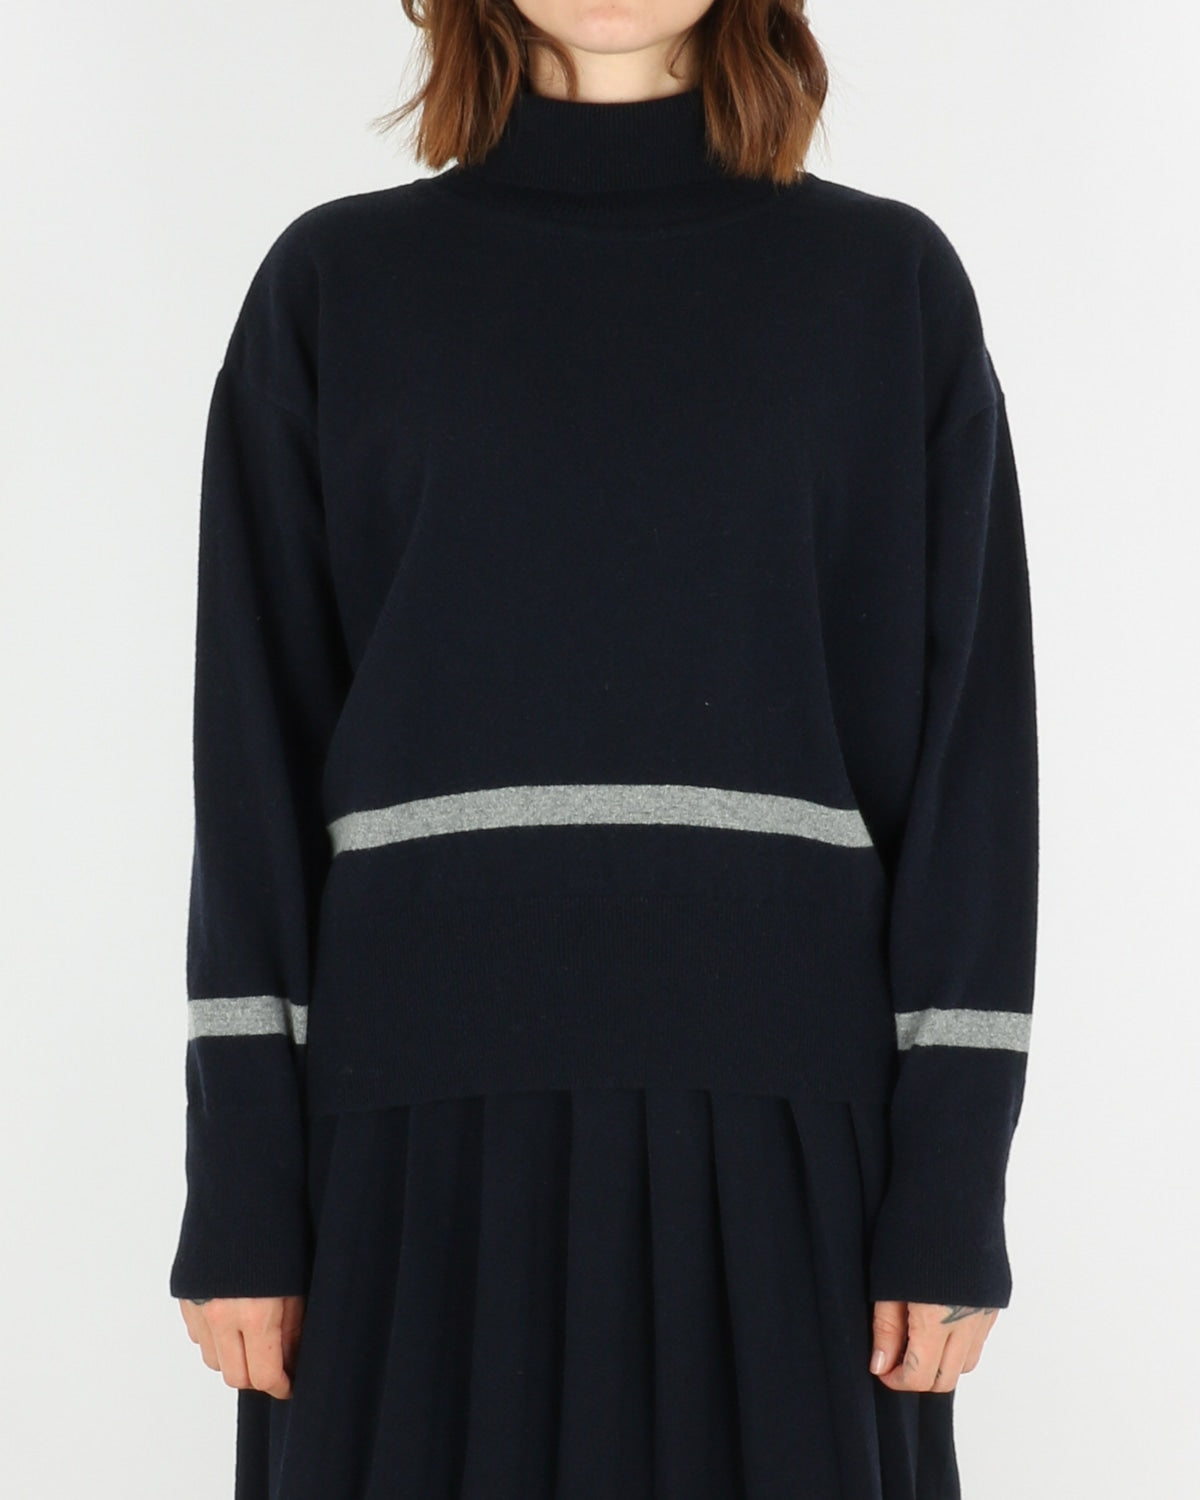 libertine libertine_husky knit_dark navy grey melange_1_4